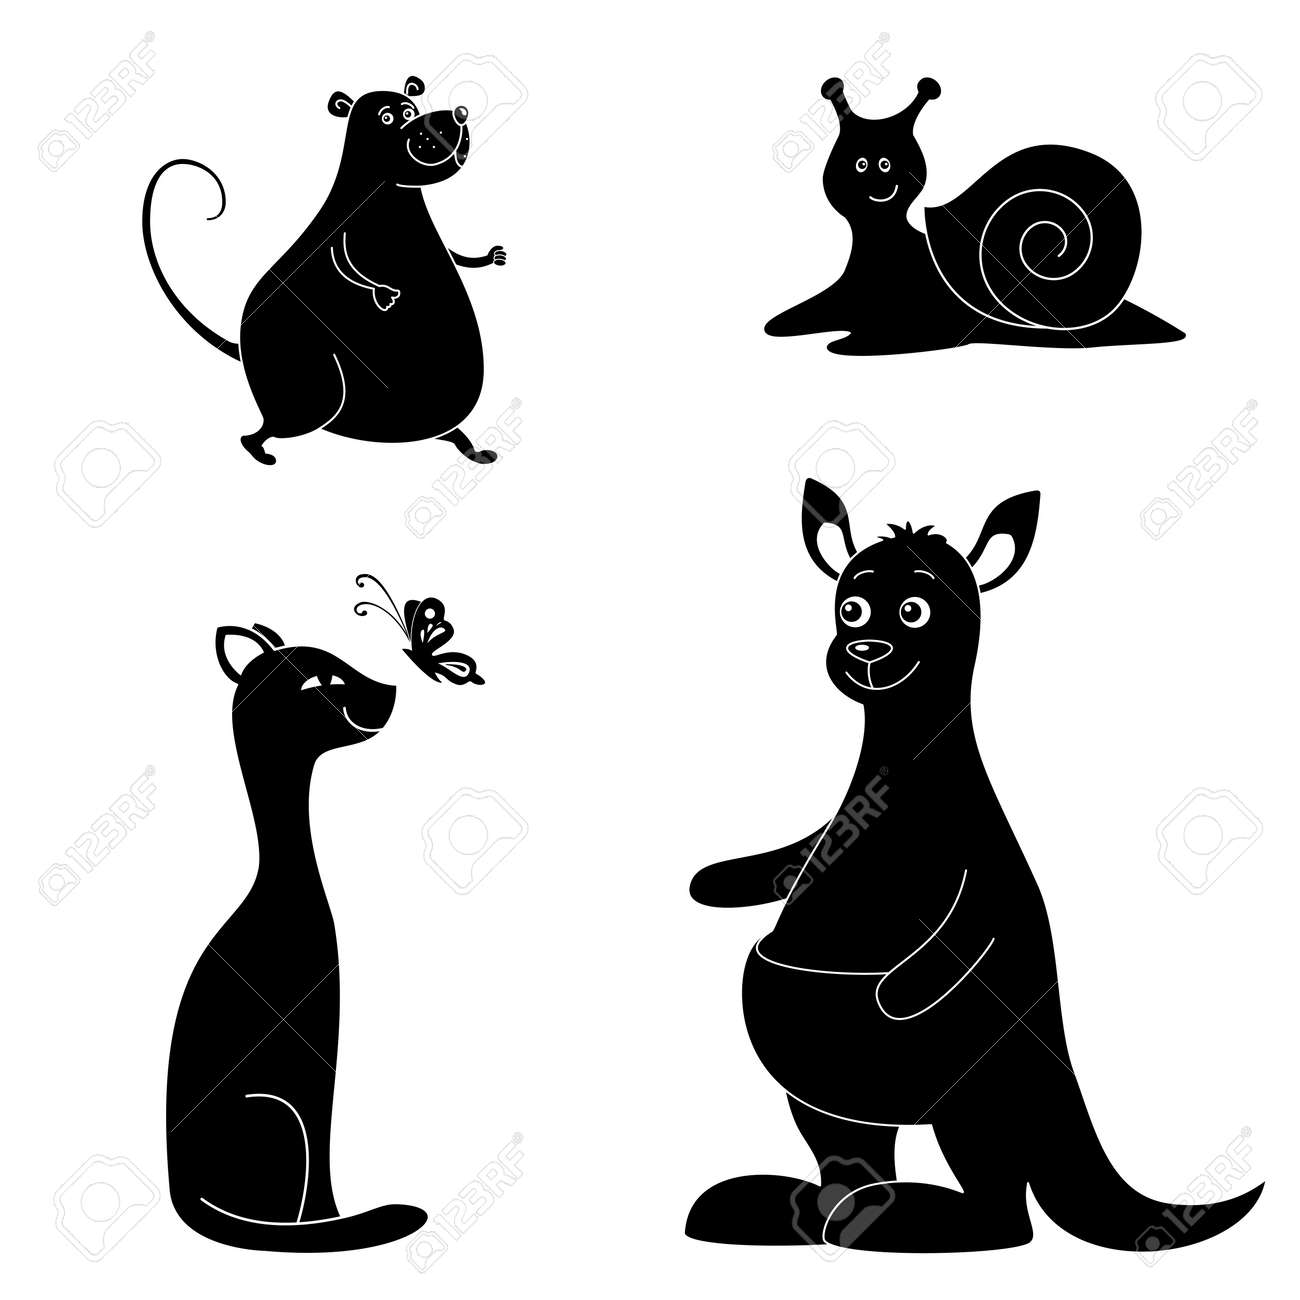 Cartoon animals  rat, snail, cat, butterfly, kangaroo  Black silhouettes on white background Stock Vector - 17514323